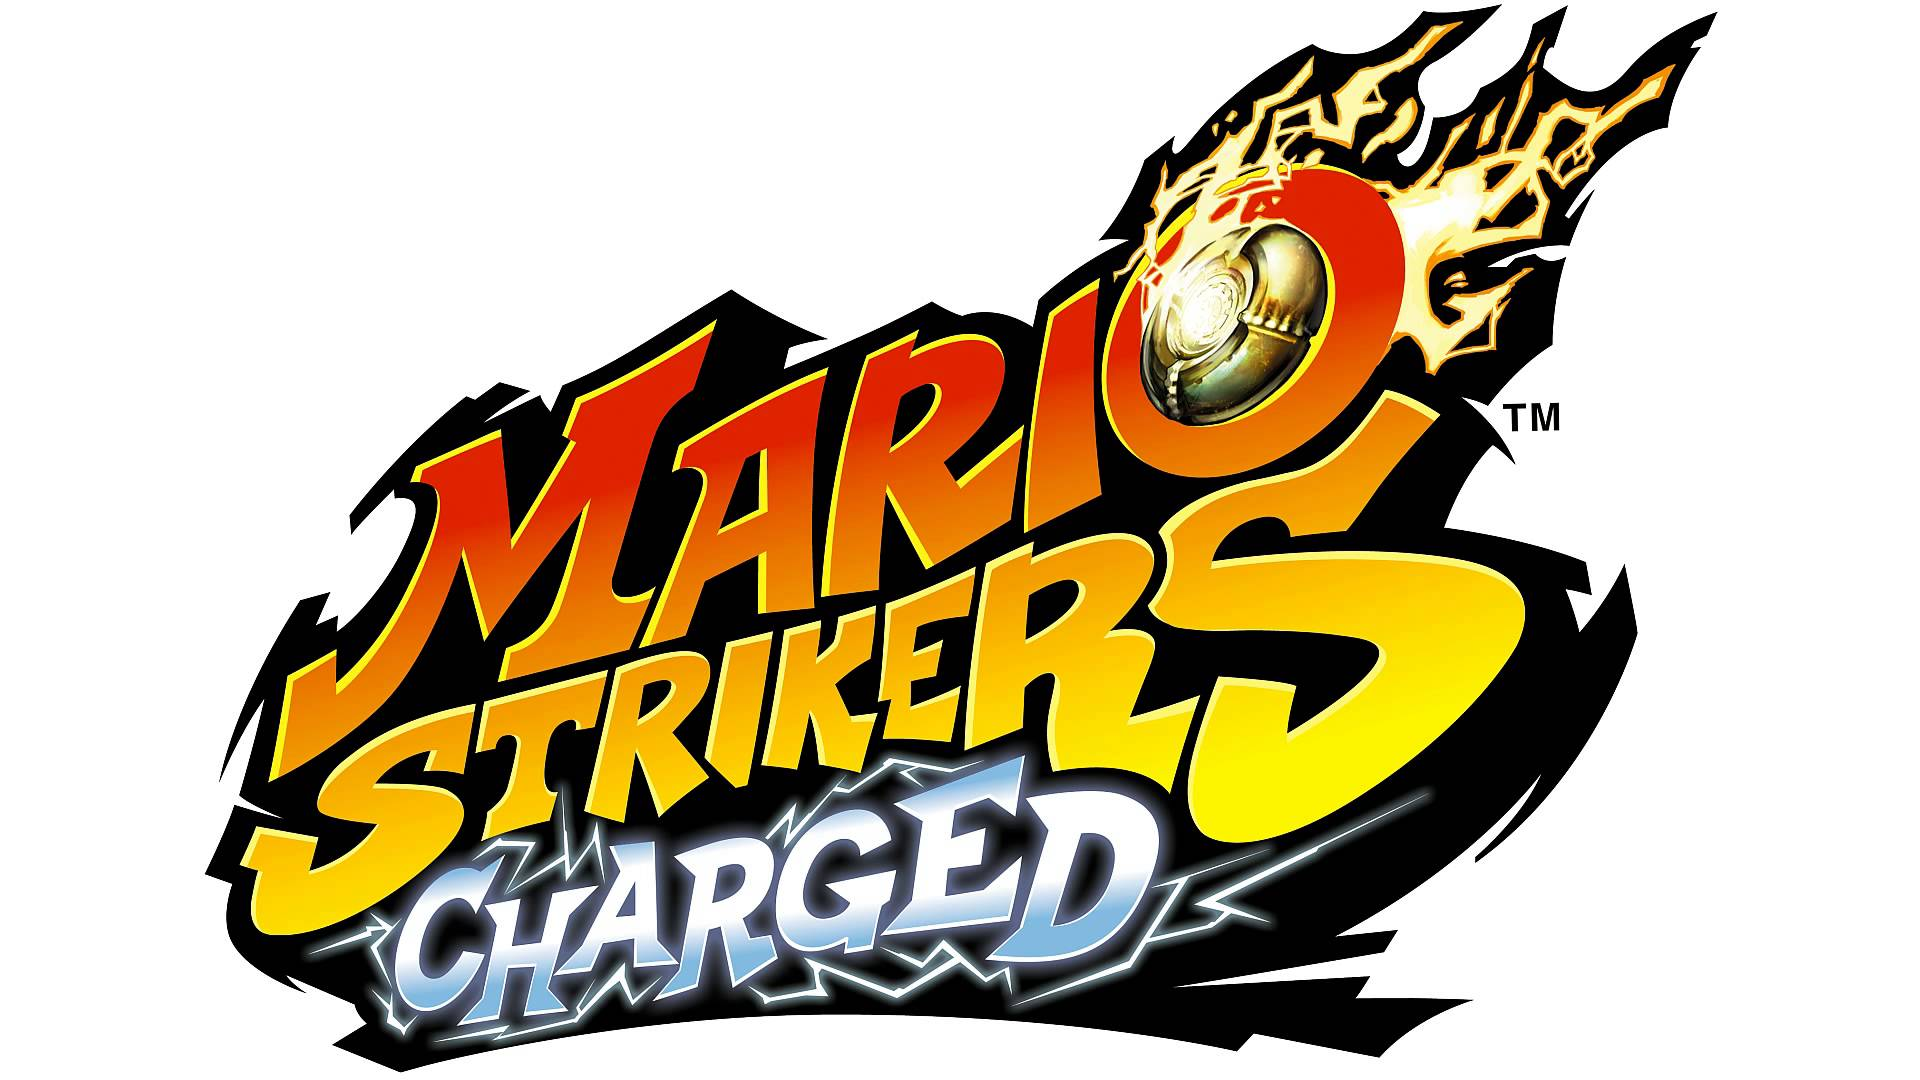 Sudden Death - Mario Strikers Charged